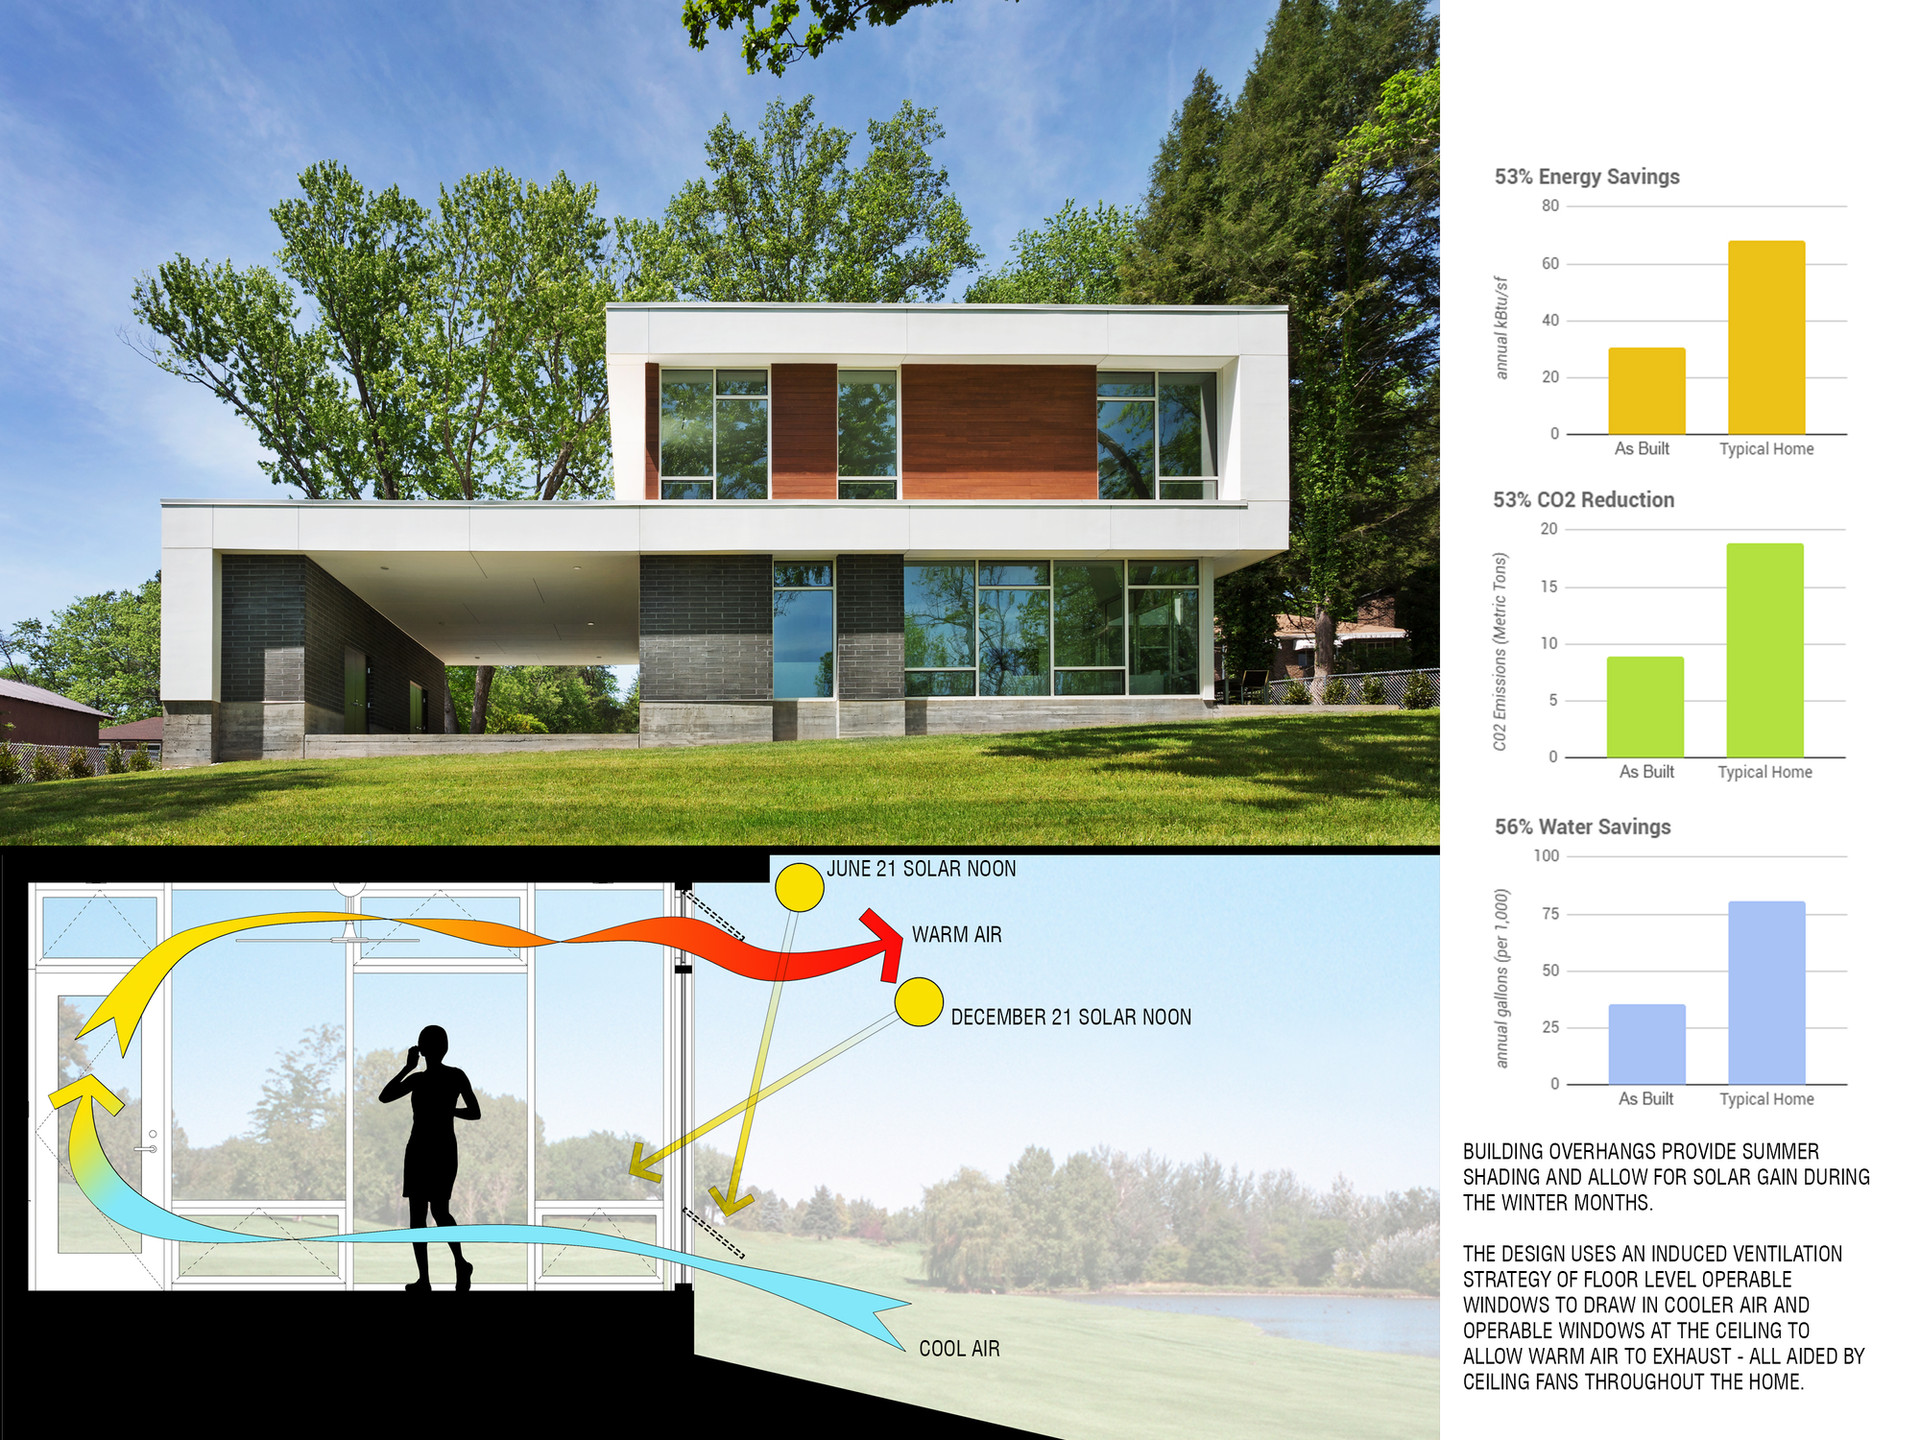 Solar shading and natural ventilation strategy